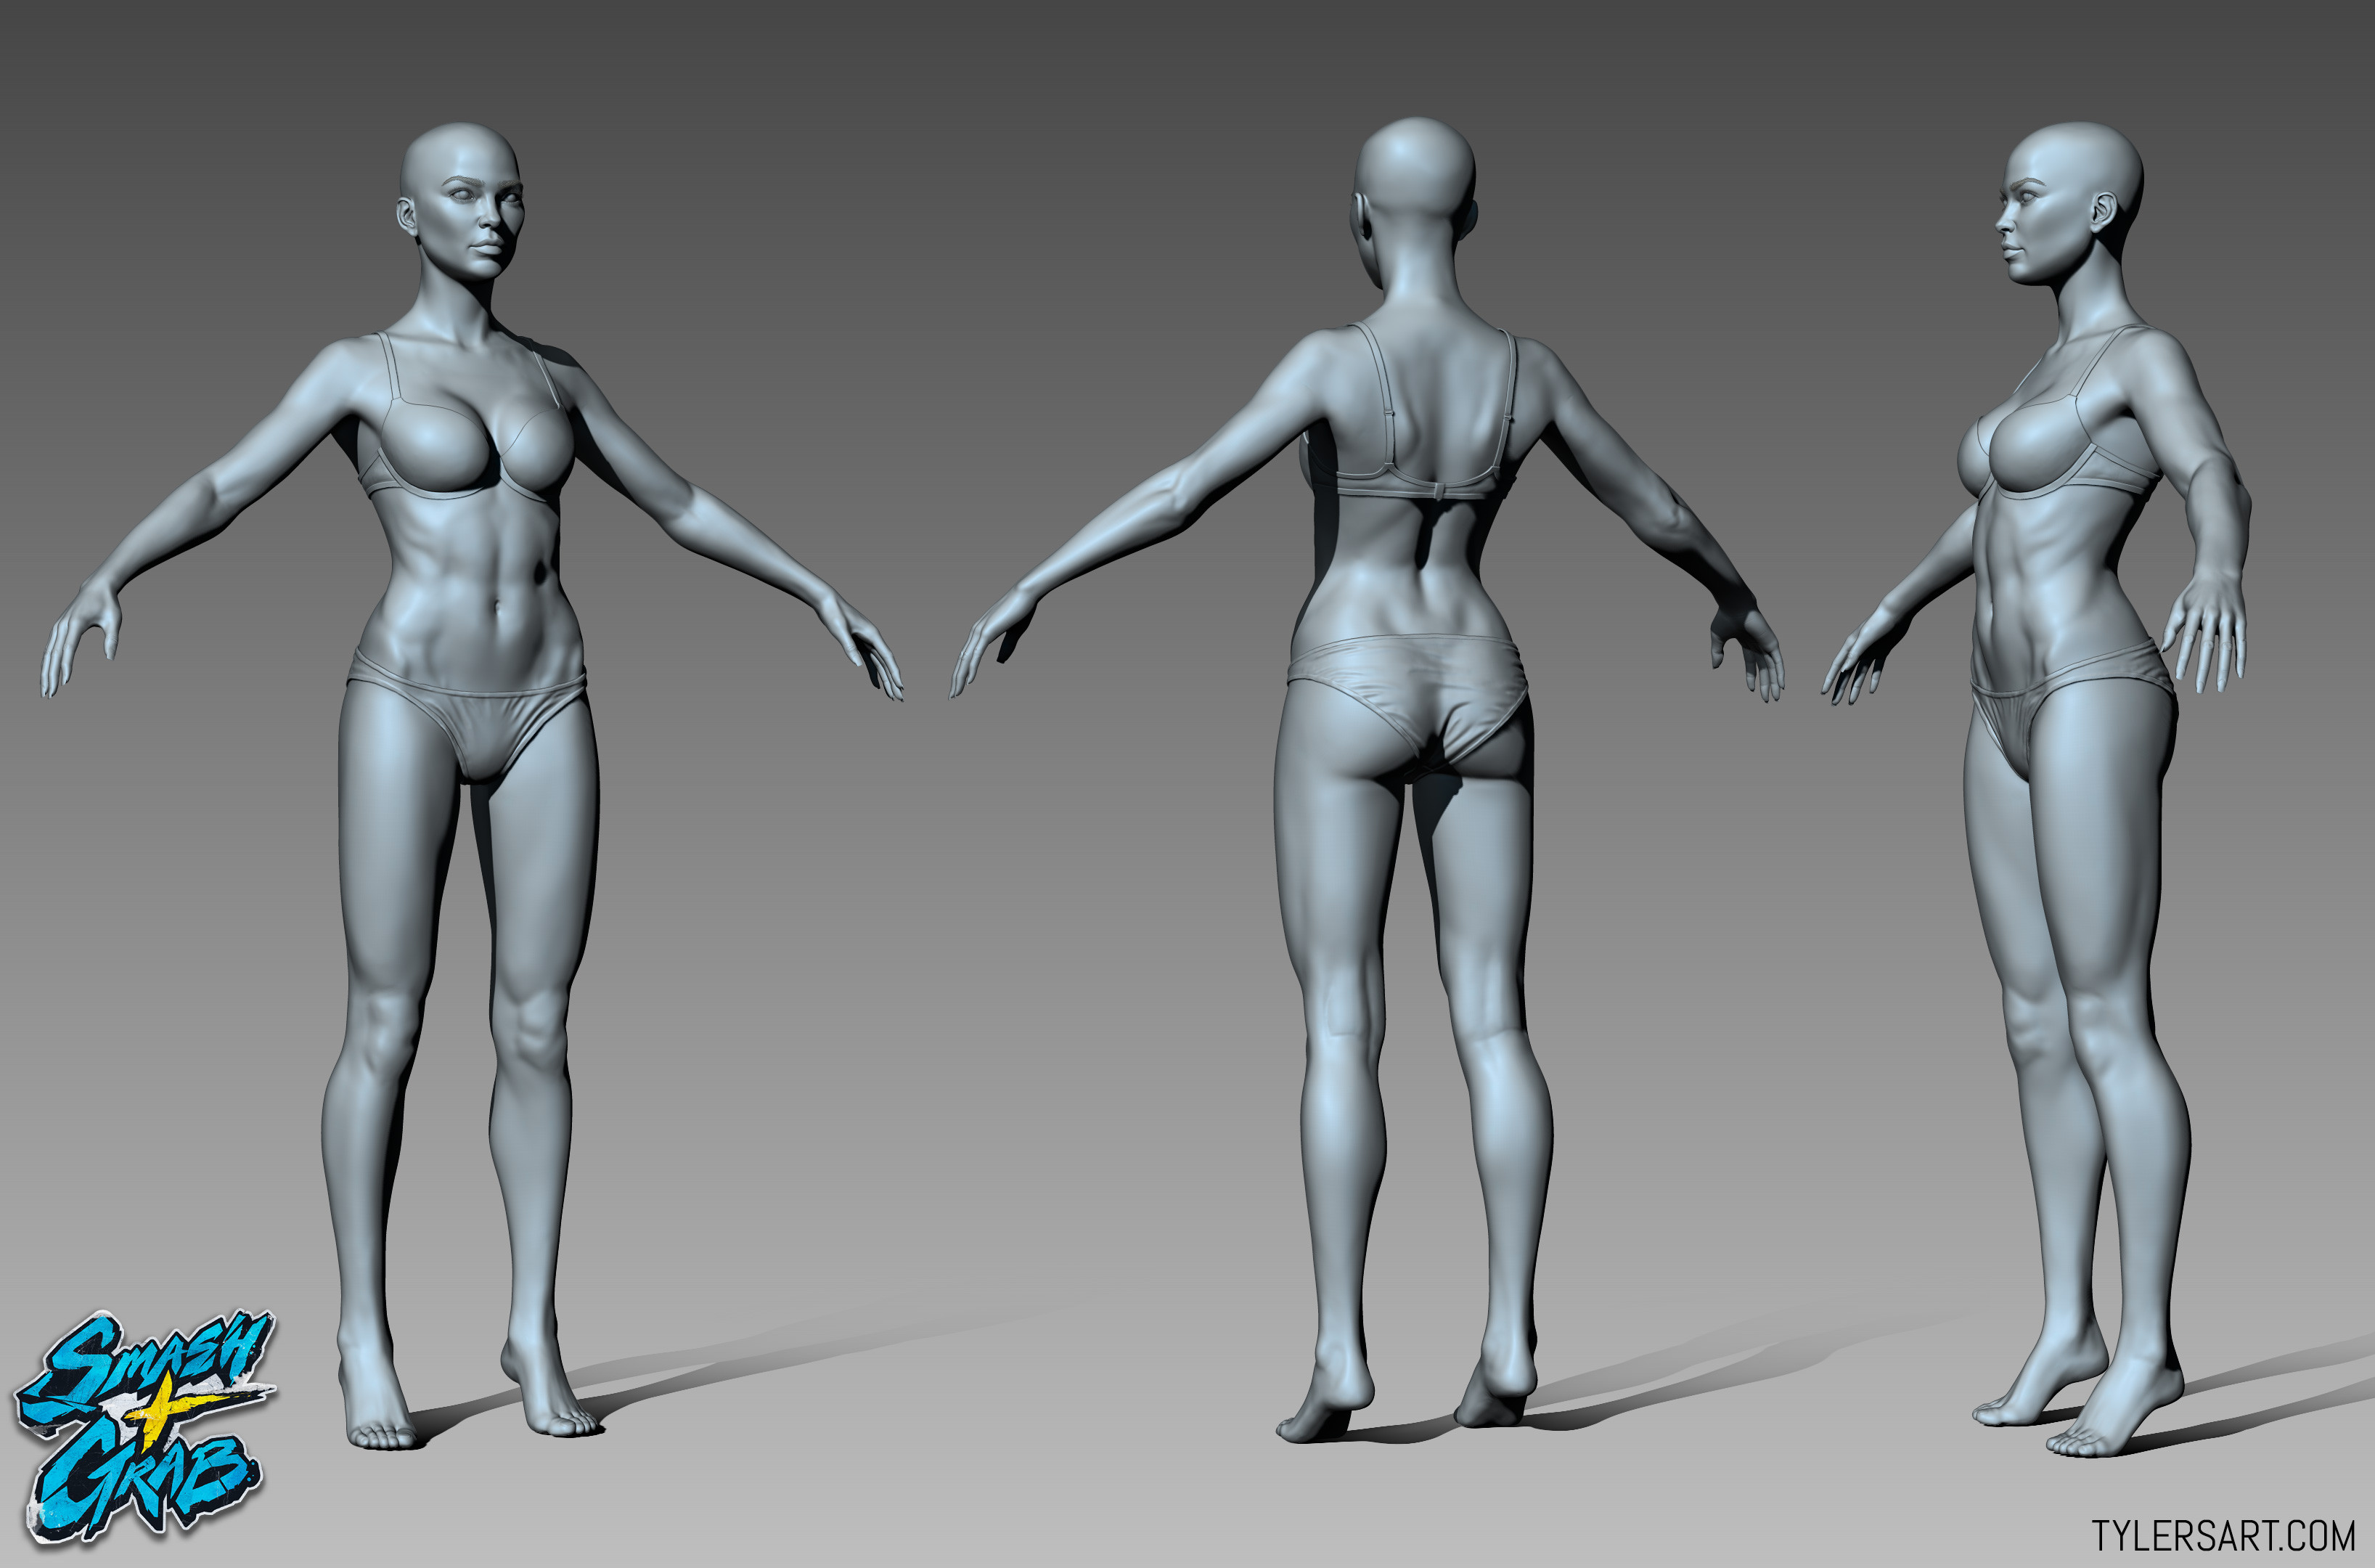 Medium - Base Female Sculpt